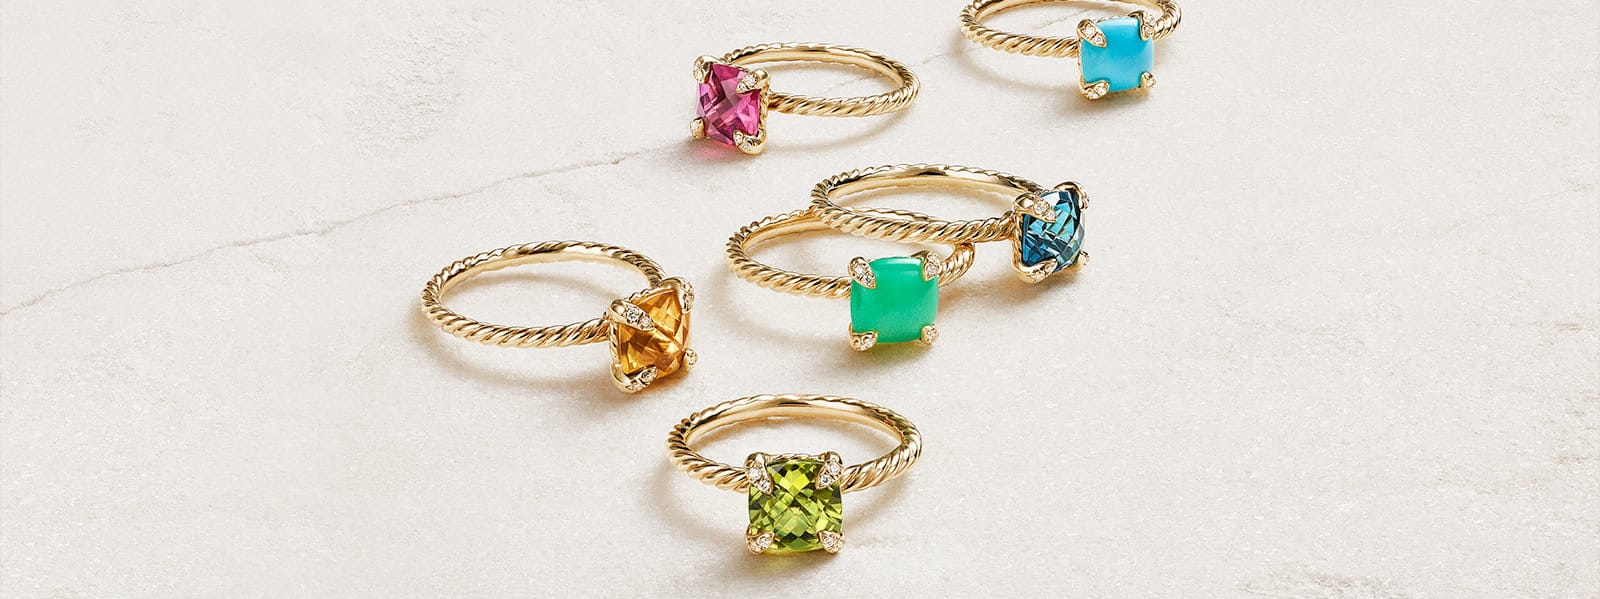 Châtelaine® rings in 18K yellow gold with colored gemstones and pavé diamonds.